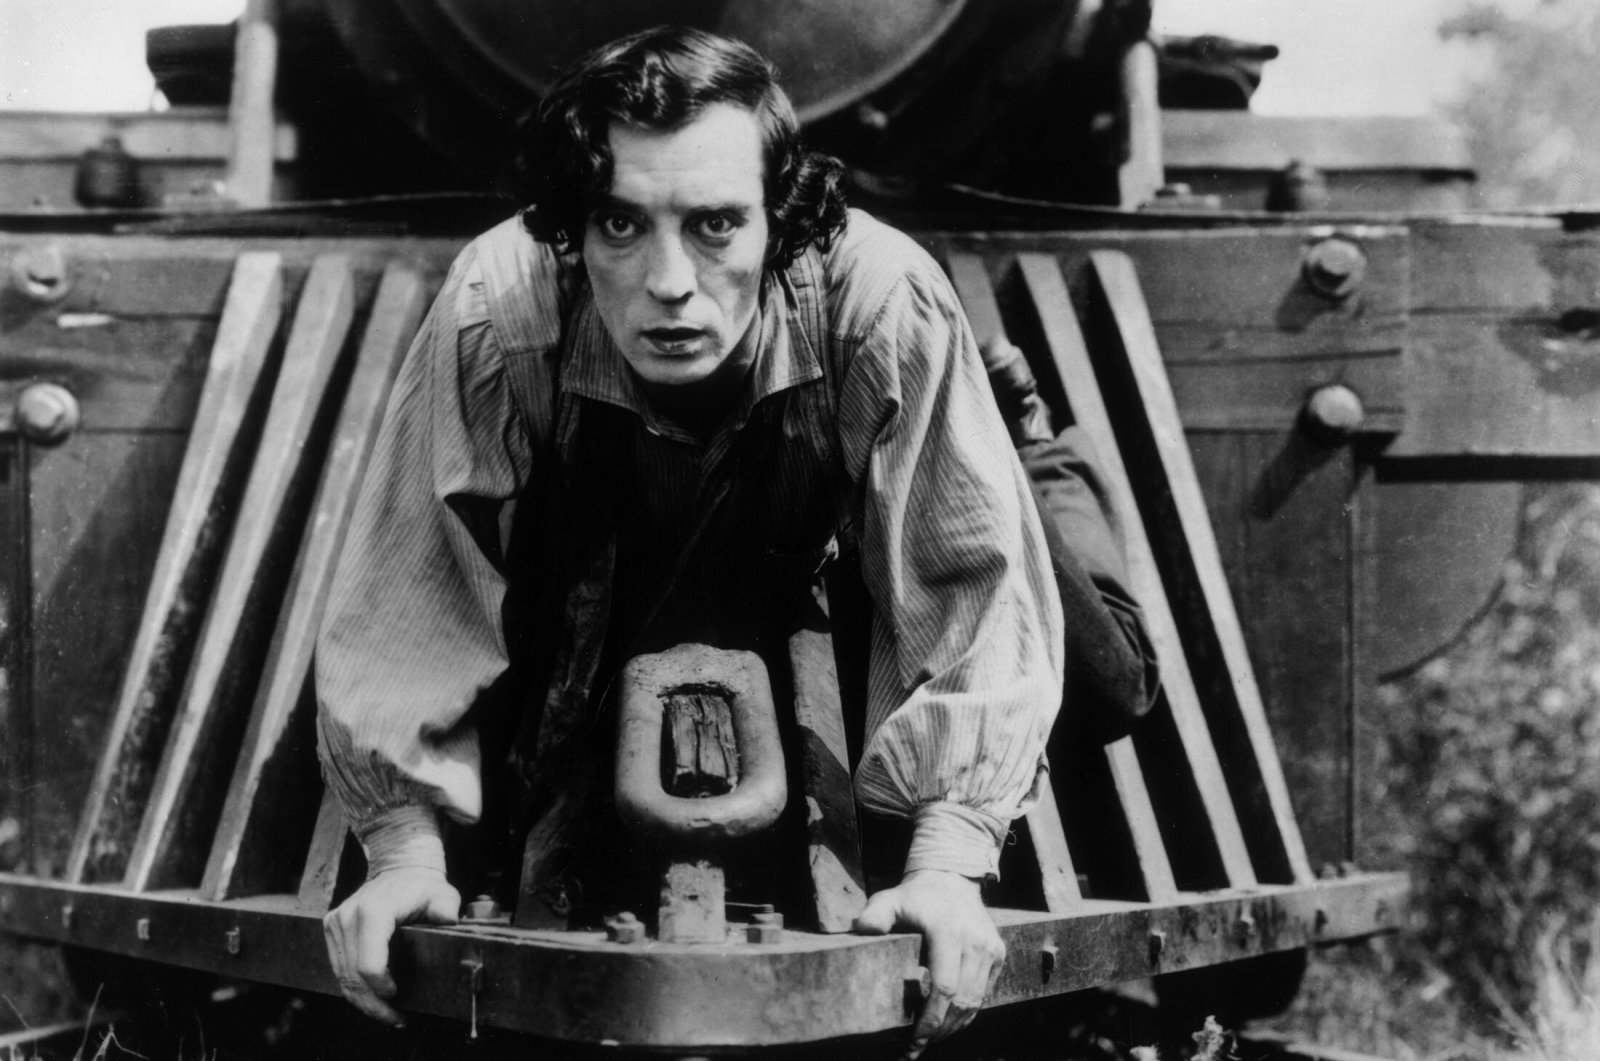 """American actor Buster Keaton clinging to the front of a train in a still from the film, """"The General,"""" directed by Keaton and Clyde Bruckman, released in 1926.  (Getty Images)"""